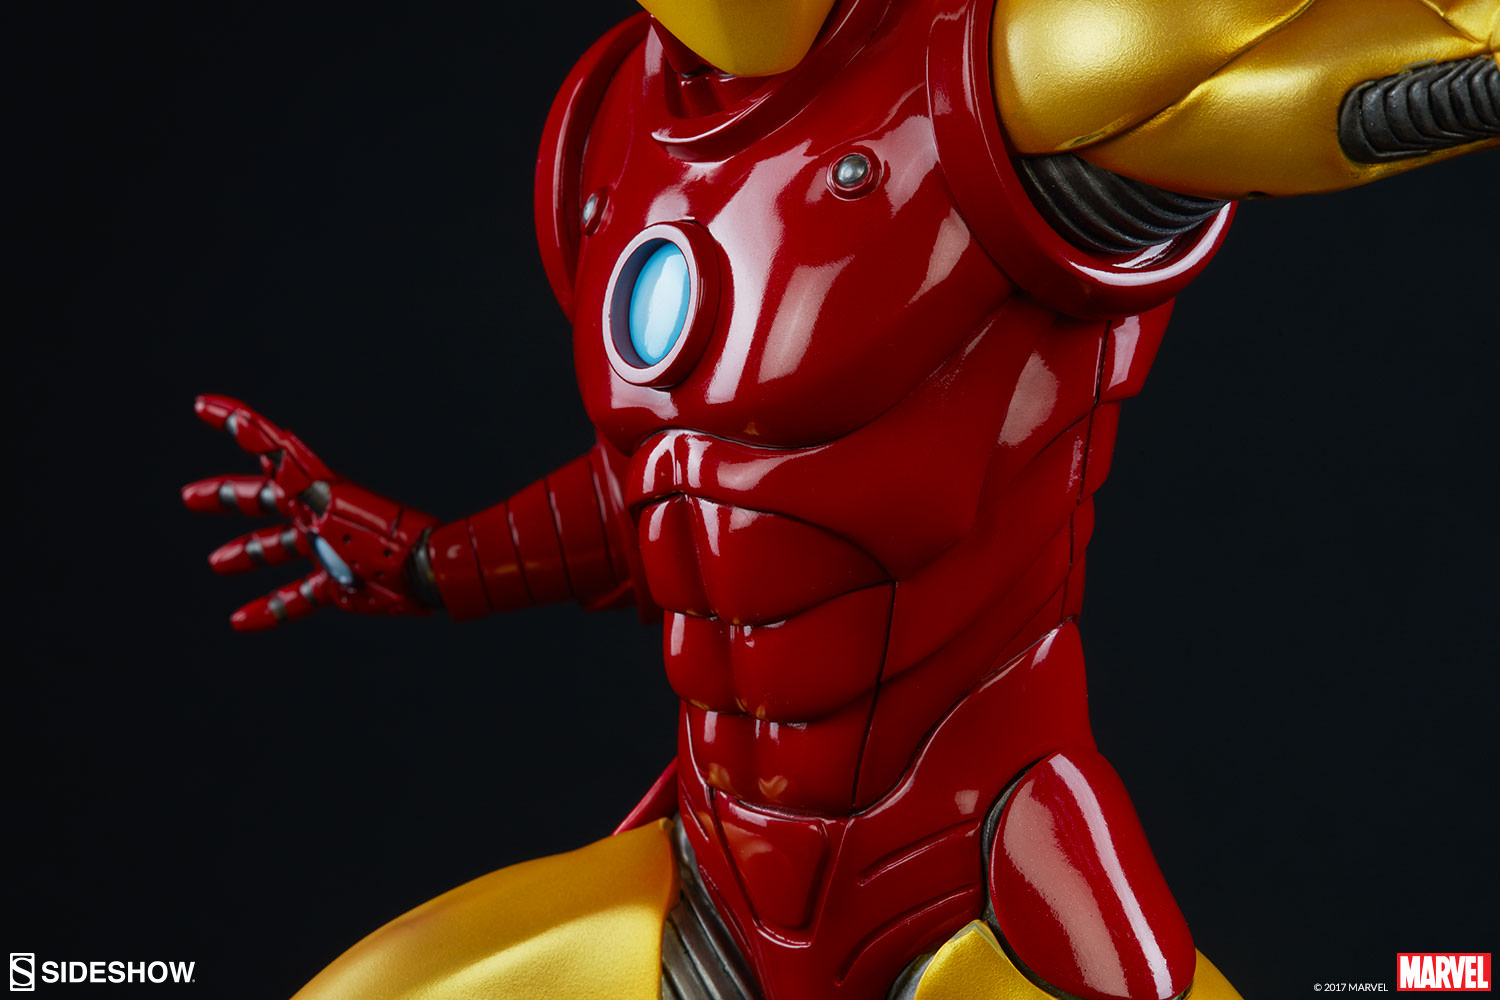 Marvel iron man statue by sideshow collectibles sideshow collectibles - Image de iron man ...